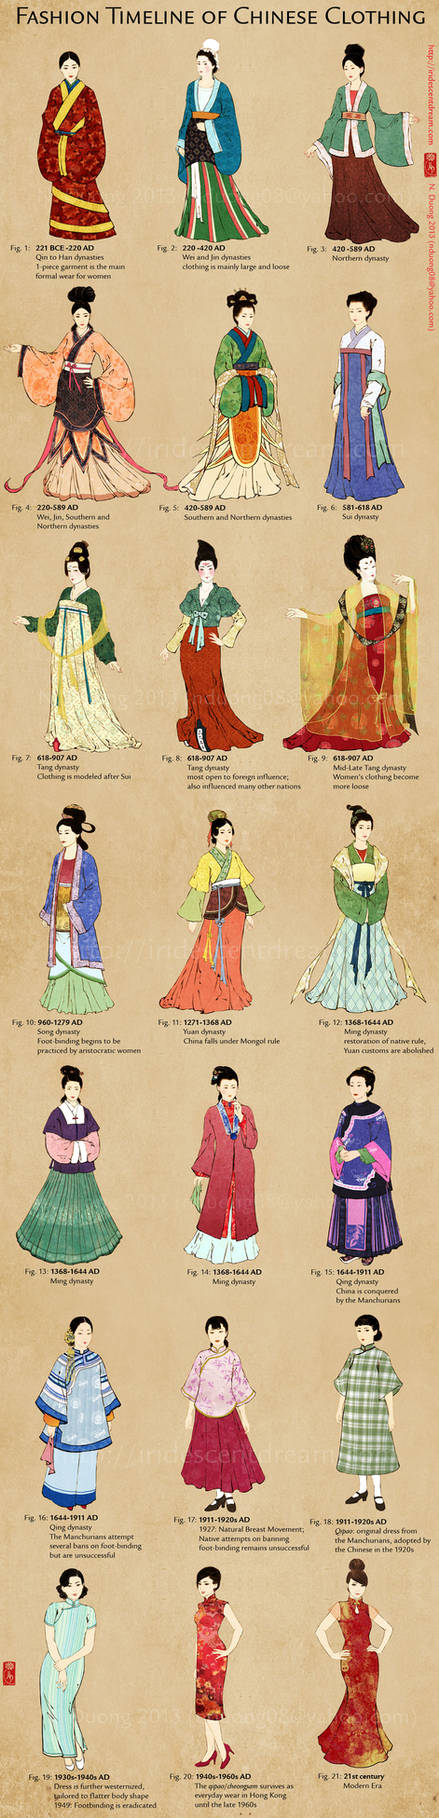 Evolution of Chinese Clothing and Cheongsam/Qipao